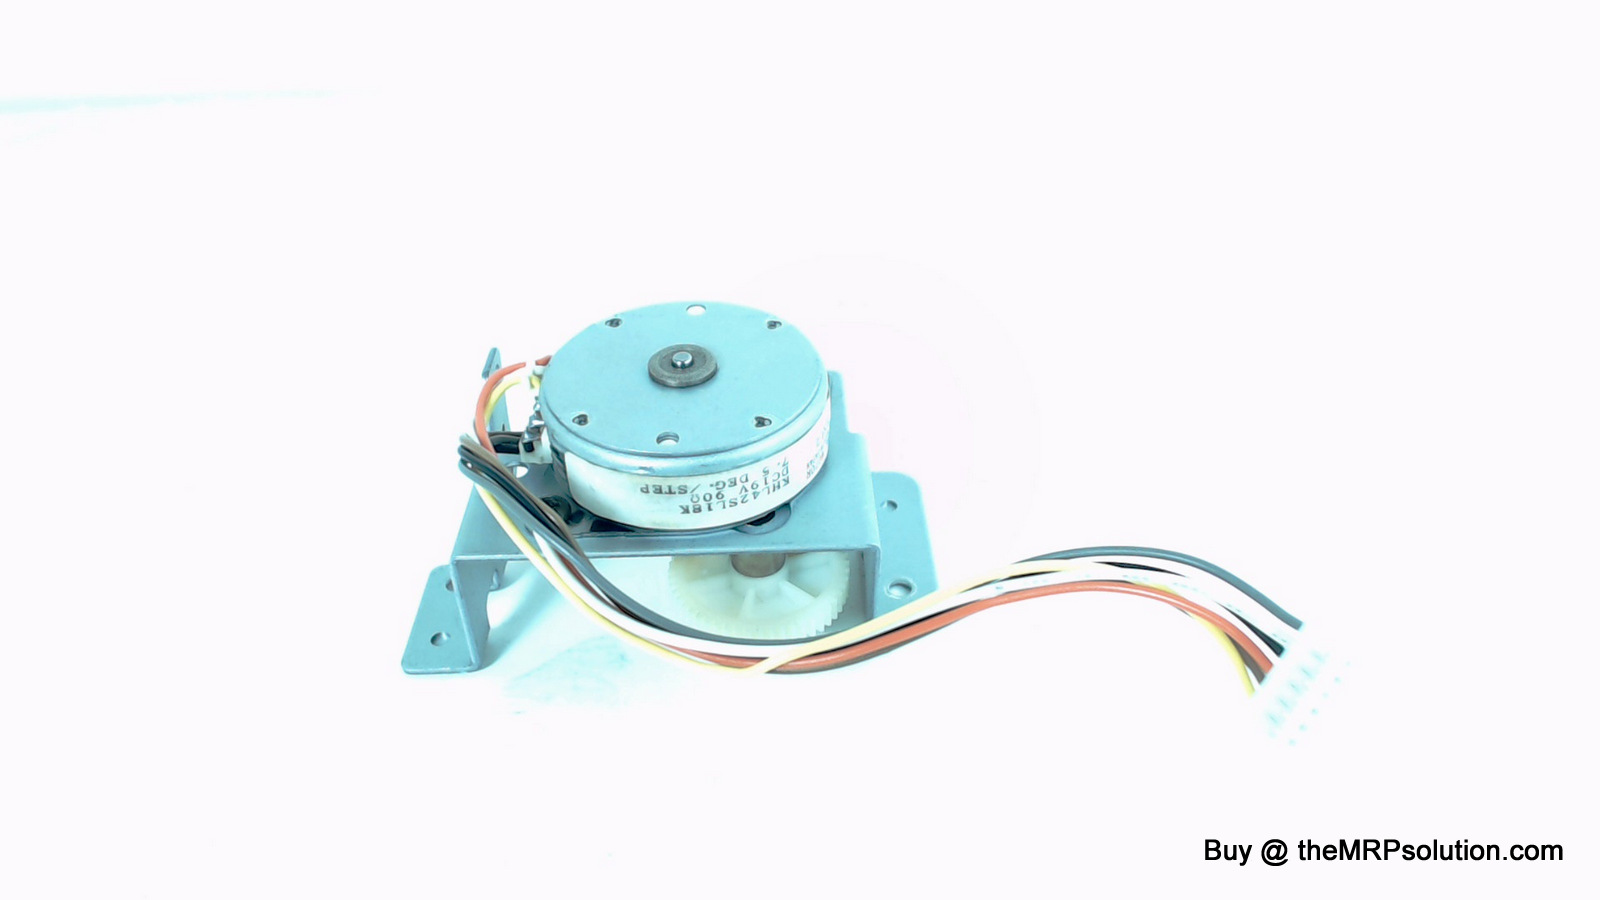 OKIDATA 40510501 CHANGE MOTOR BRKT ASM, PM4410 New